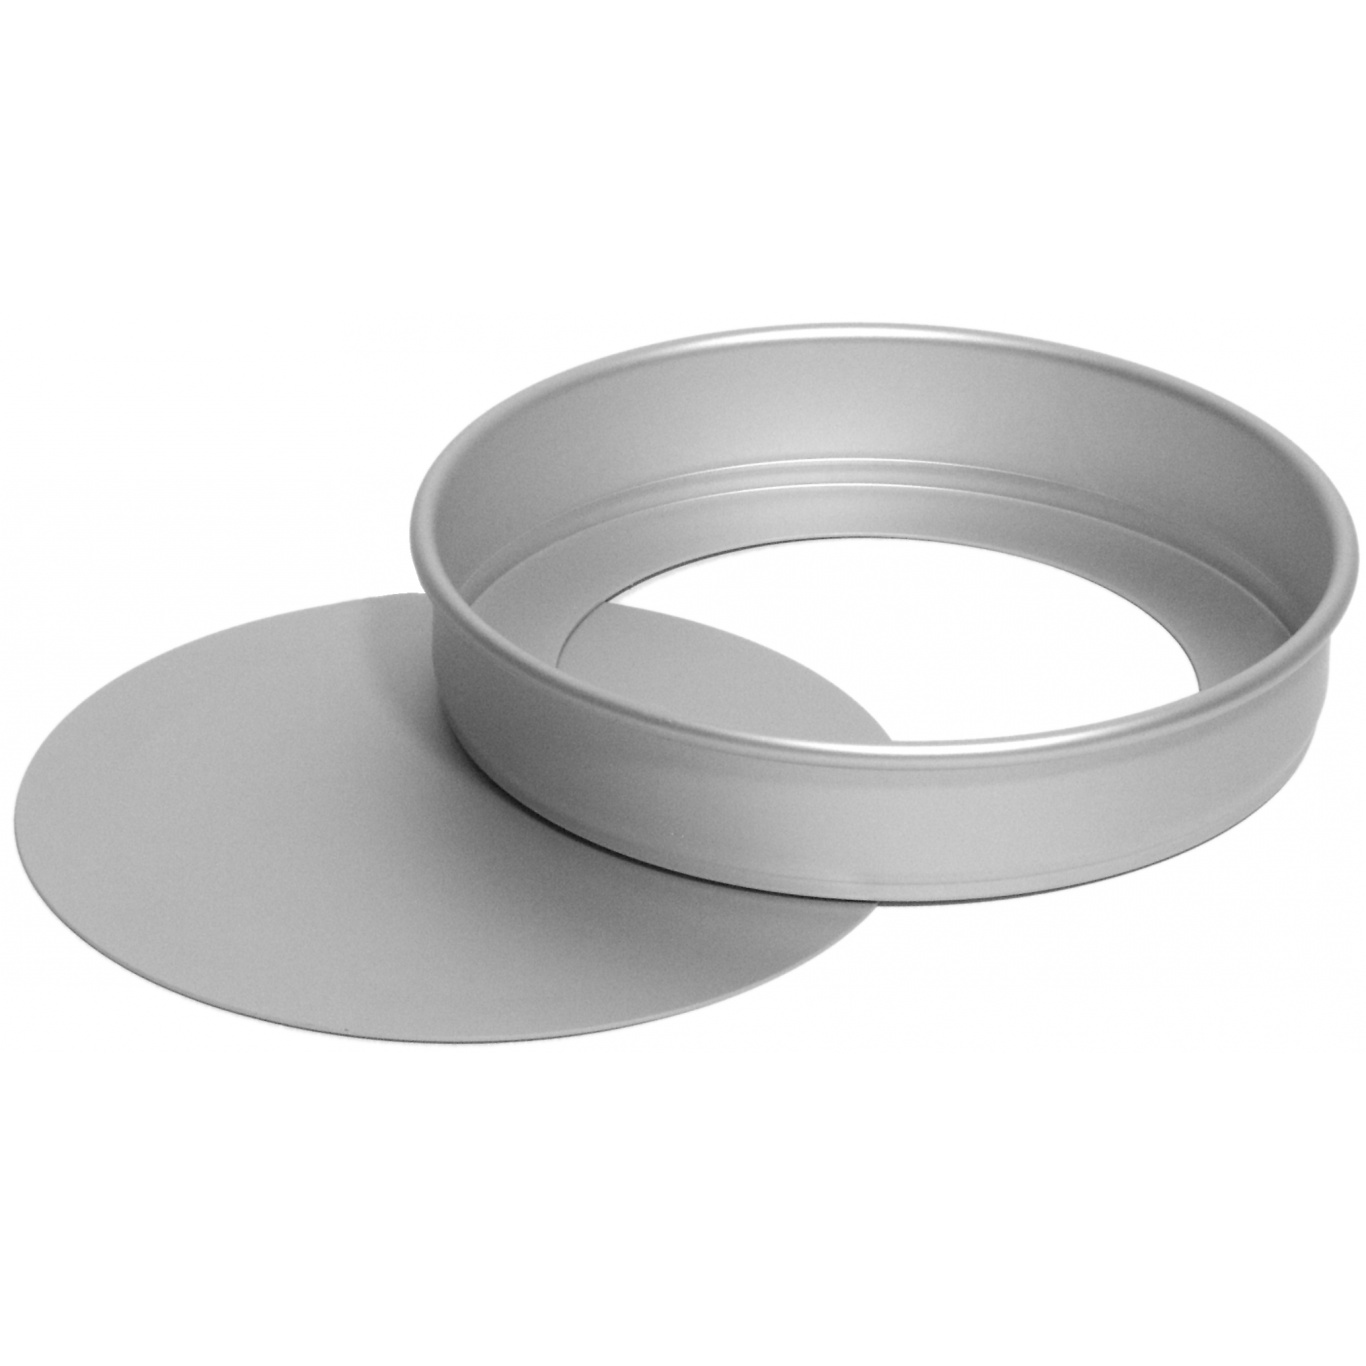 Image of Silverwood Round Sandwich Pan Loose Base 12ins/30cm